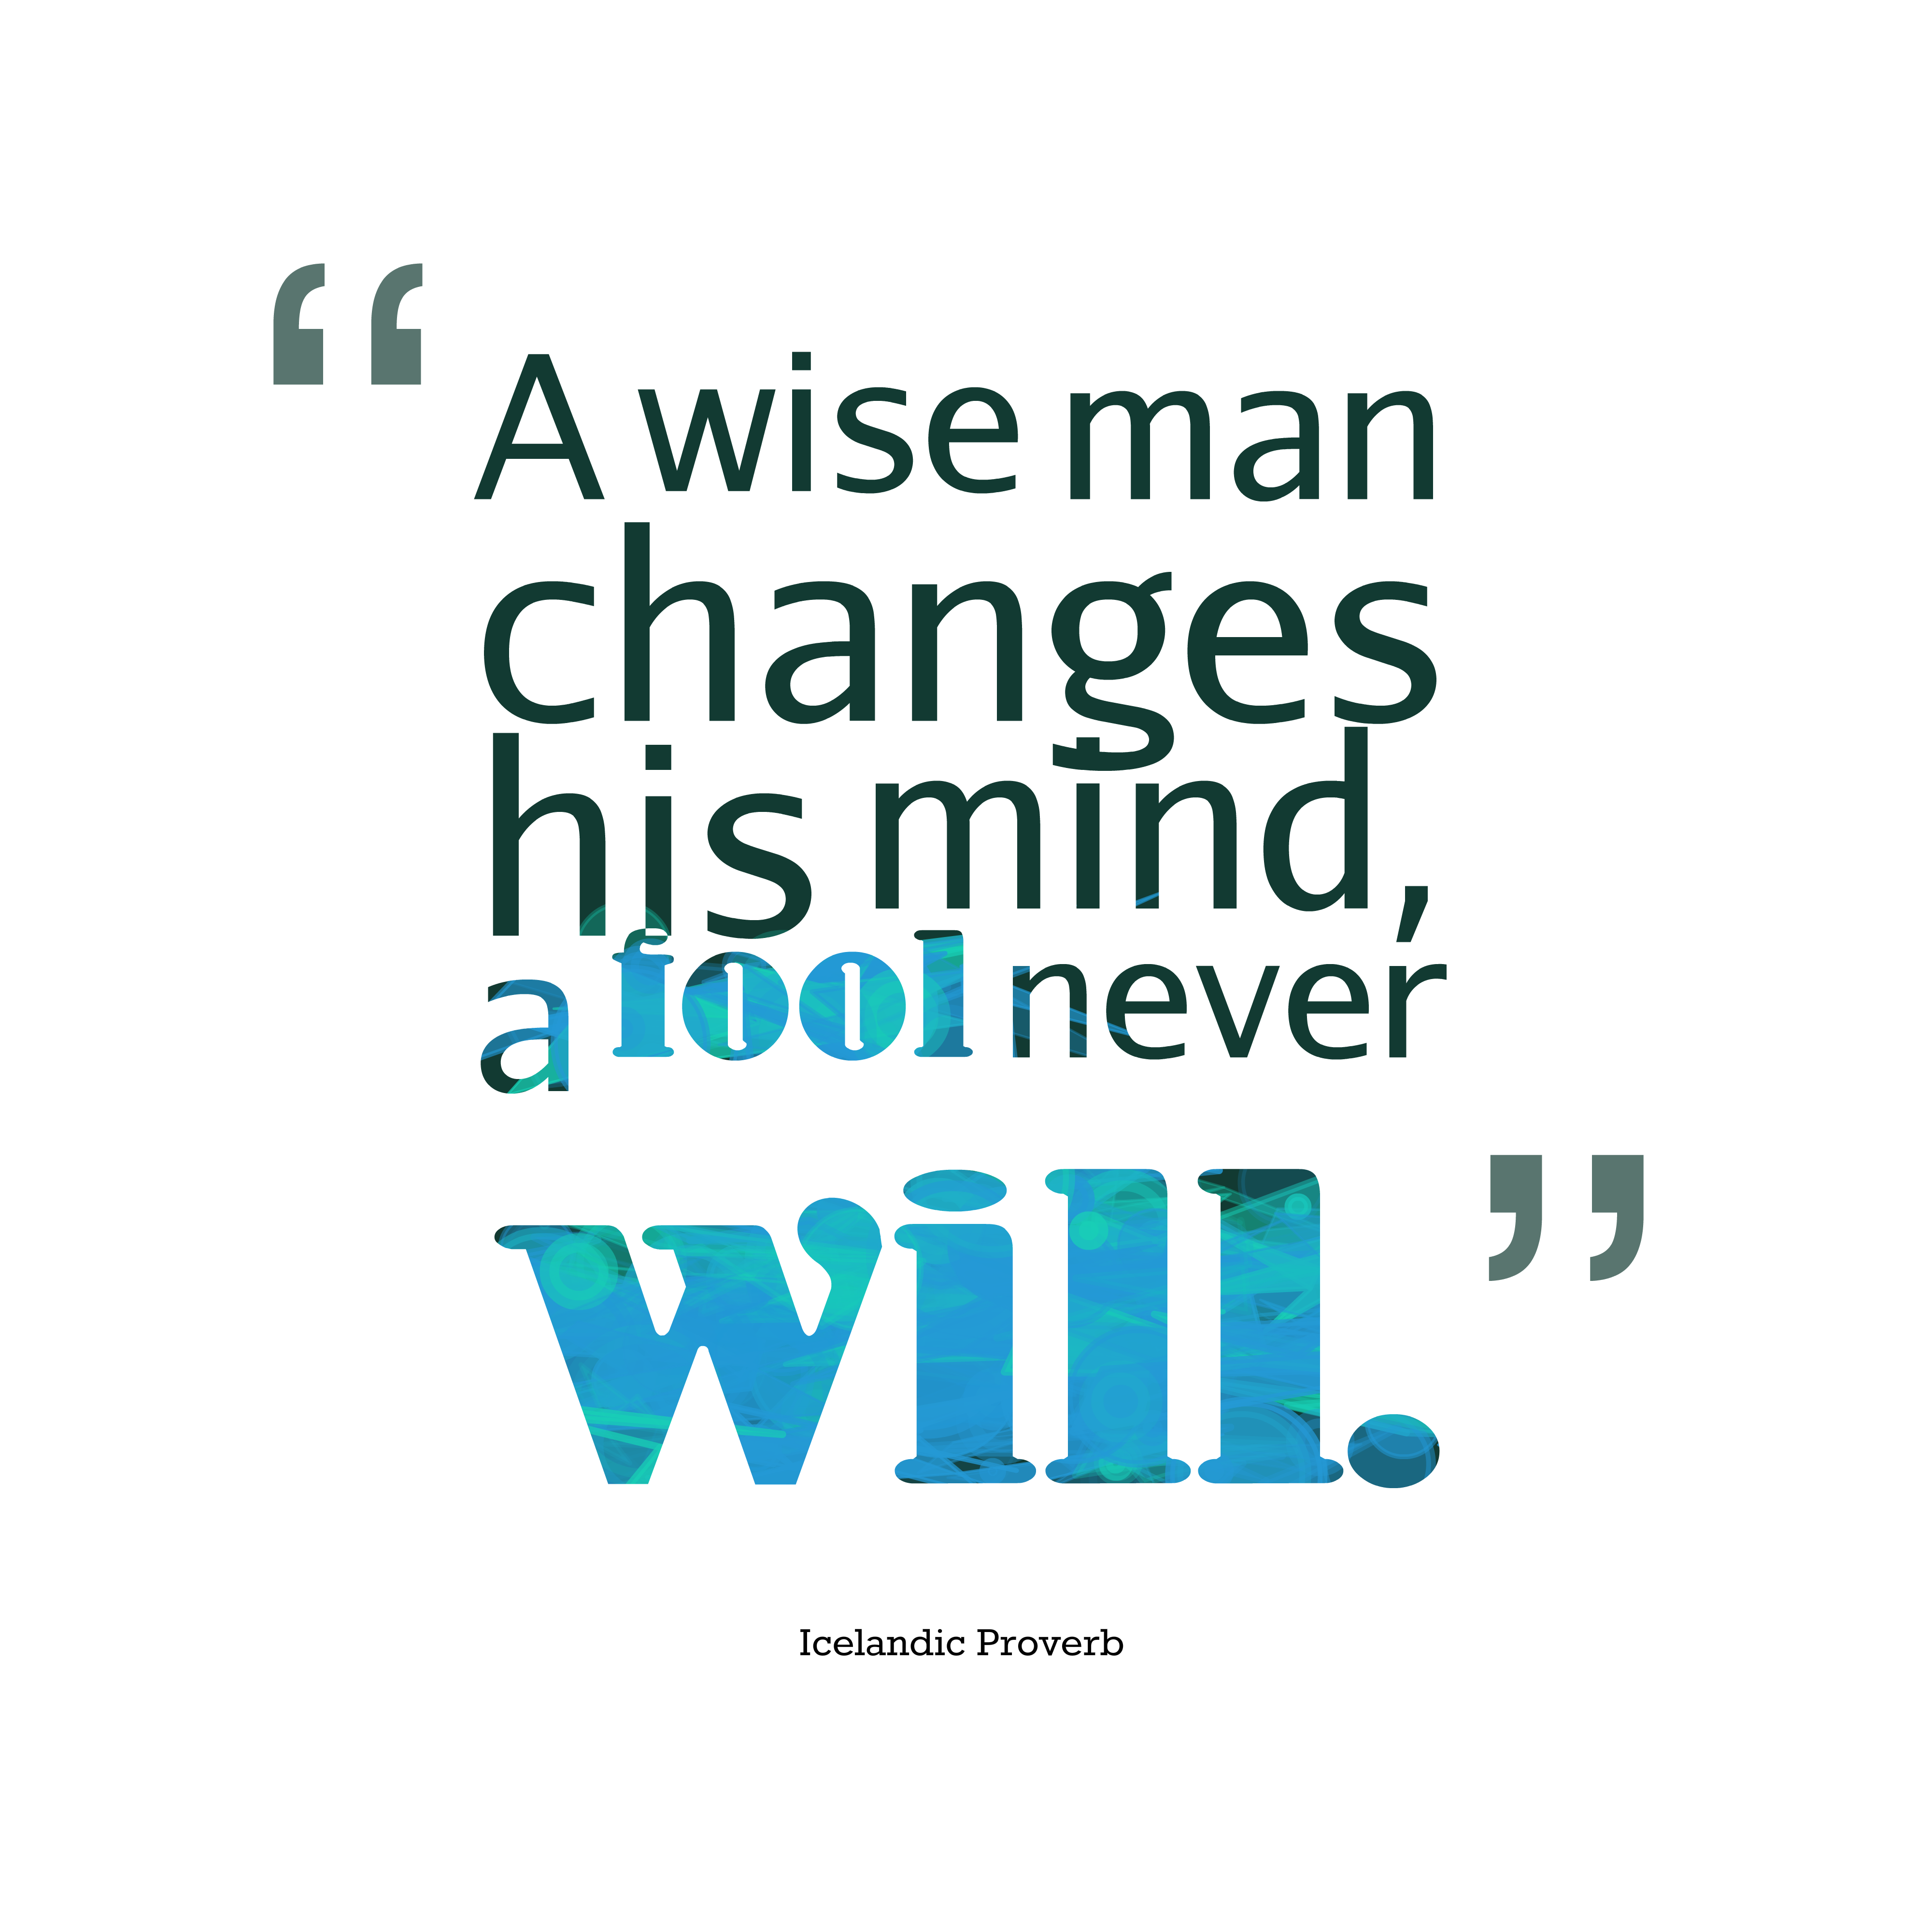 ... quotes picture maker from Icelandic proverb about change